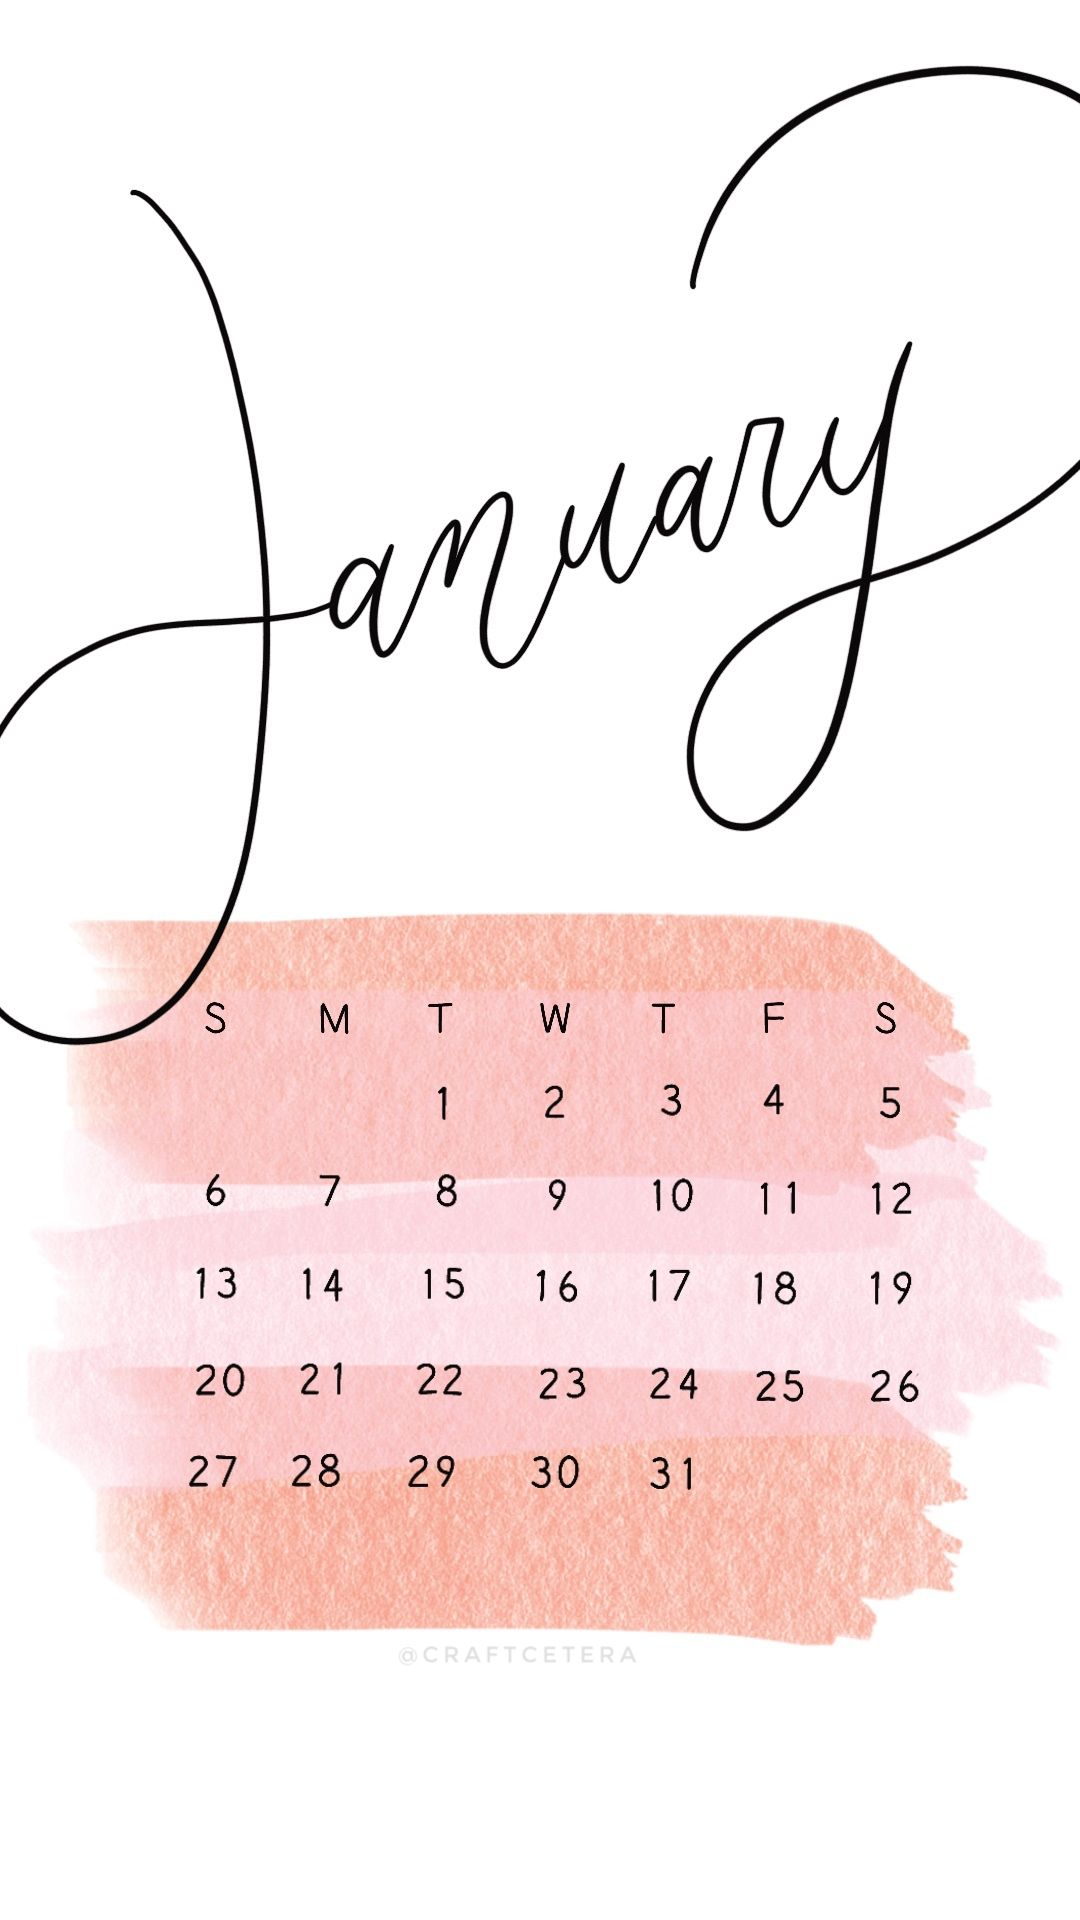 January 2019 Wallpaper January calendar January wallpaper 1080x1920